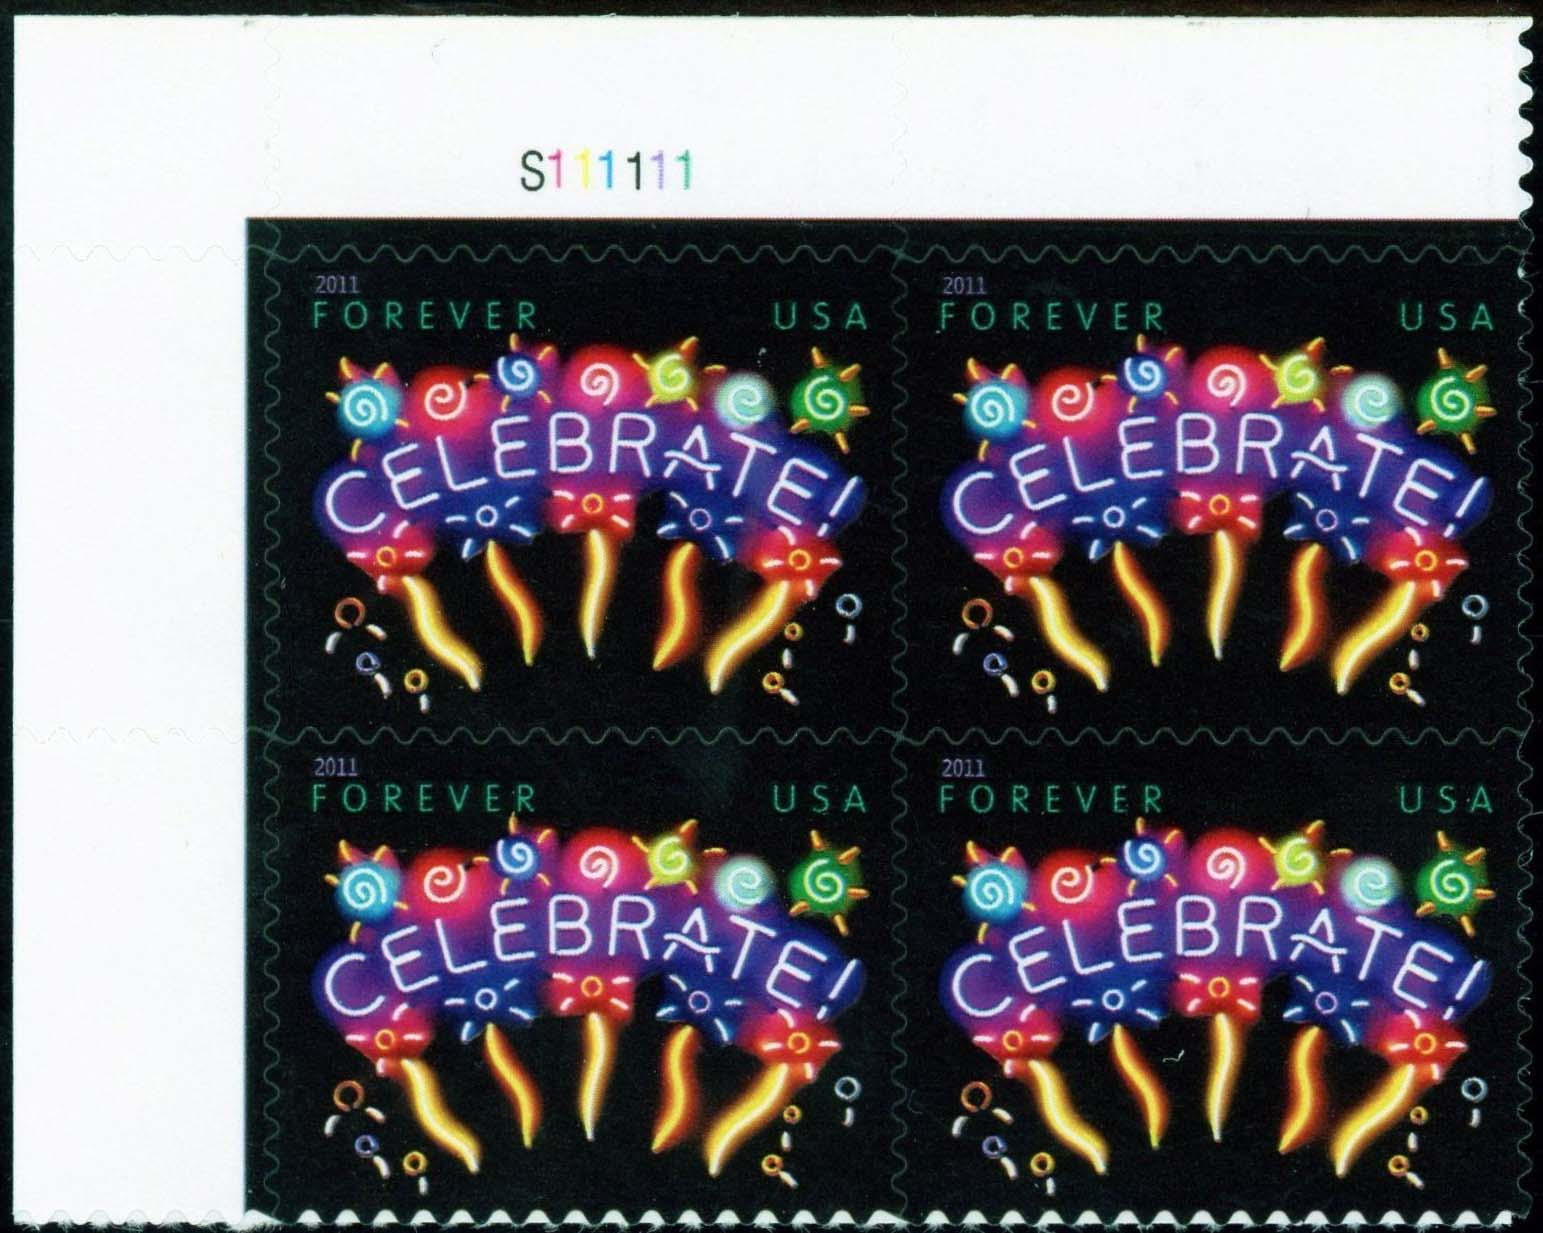 Scott 4502 Plate Block (Forever) <p> <a href=&quot;/images/USA-Scott-4502-PB.jpg&quot;><font color=green><b>View the image</a></b></font>